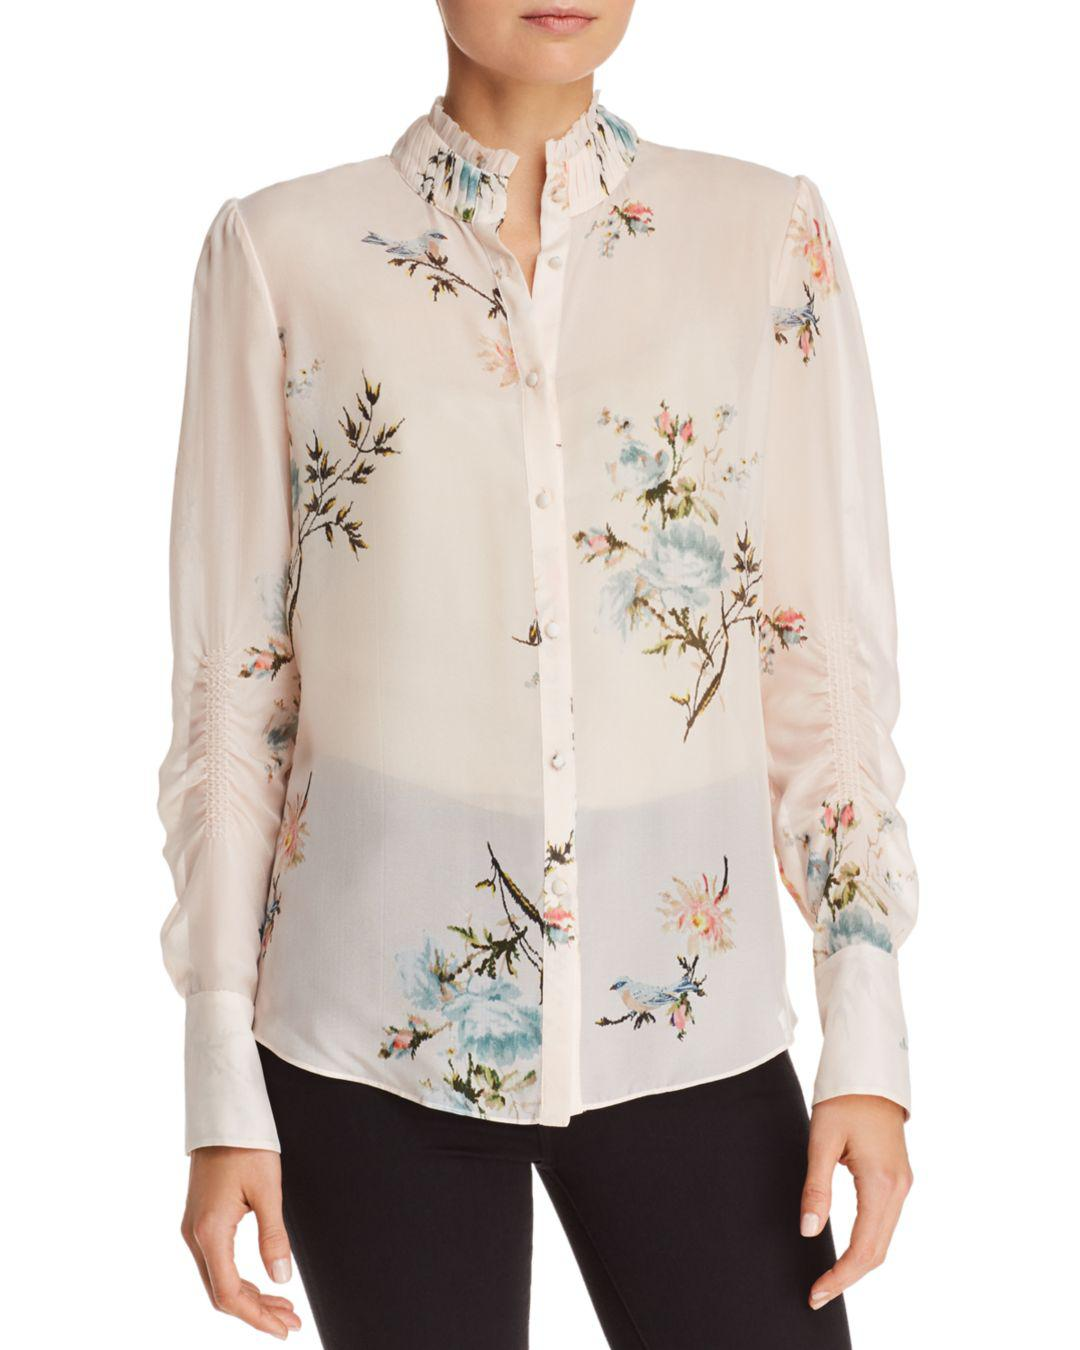 db0989e6022c0b Joie Elzie Silk Floral Blouse in Natural - Save 9% - Lyst